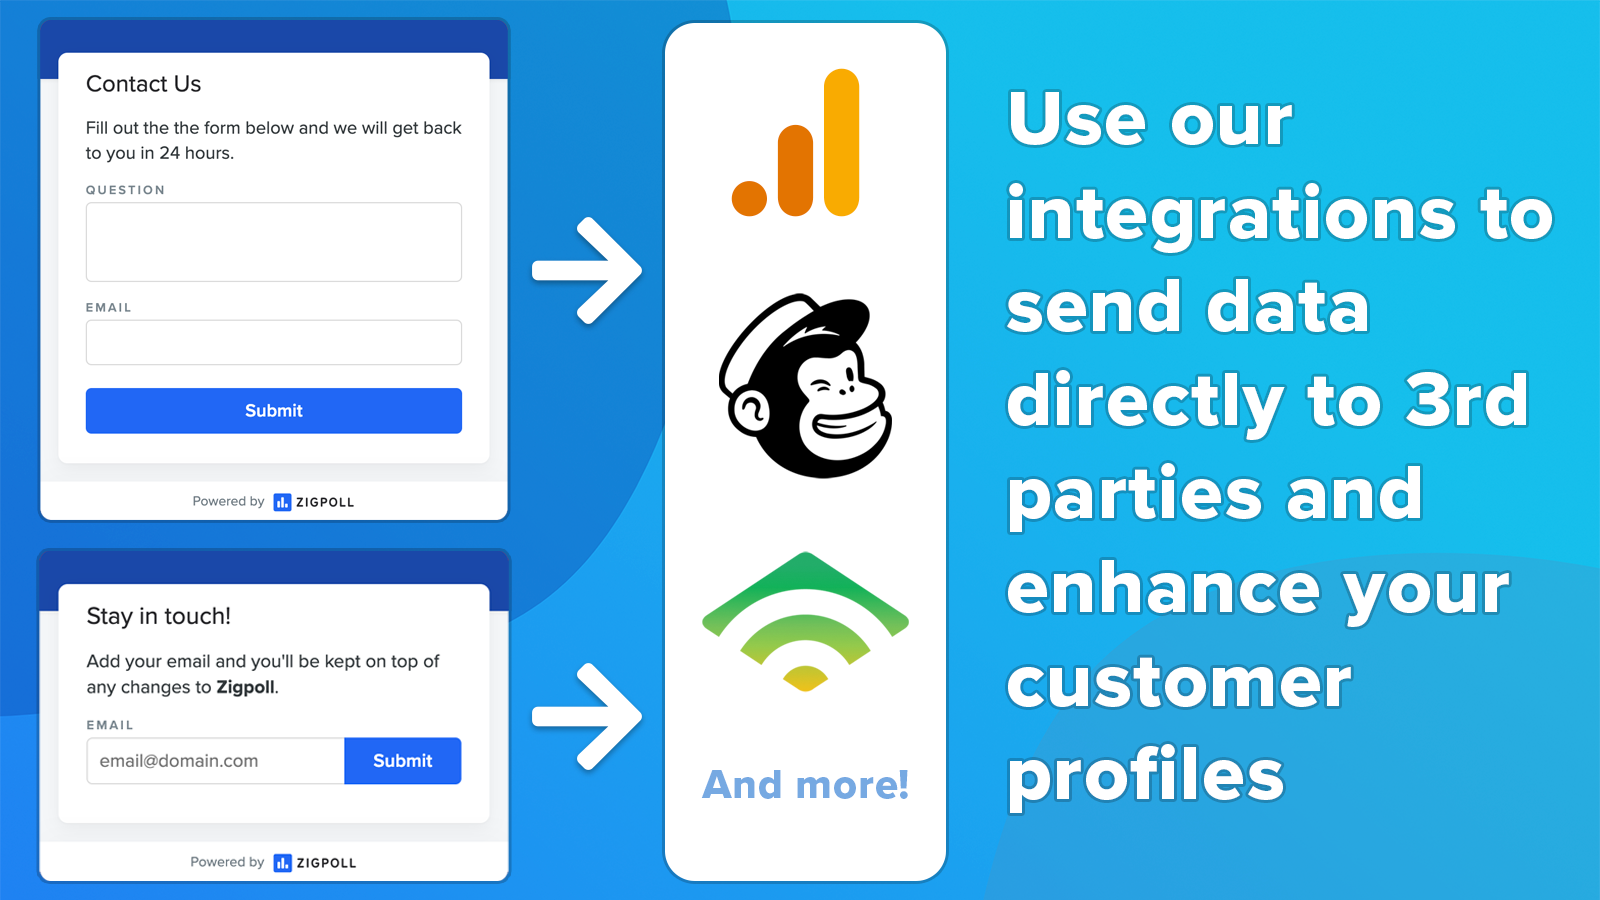 Use our integrations to send data directly to 3rd parties